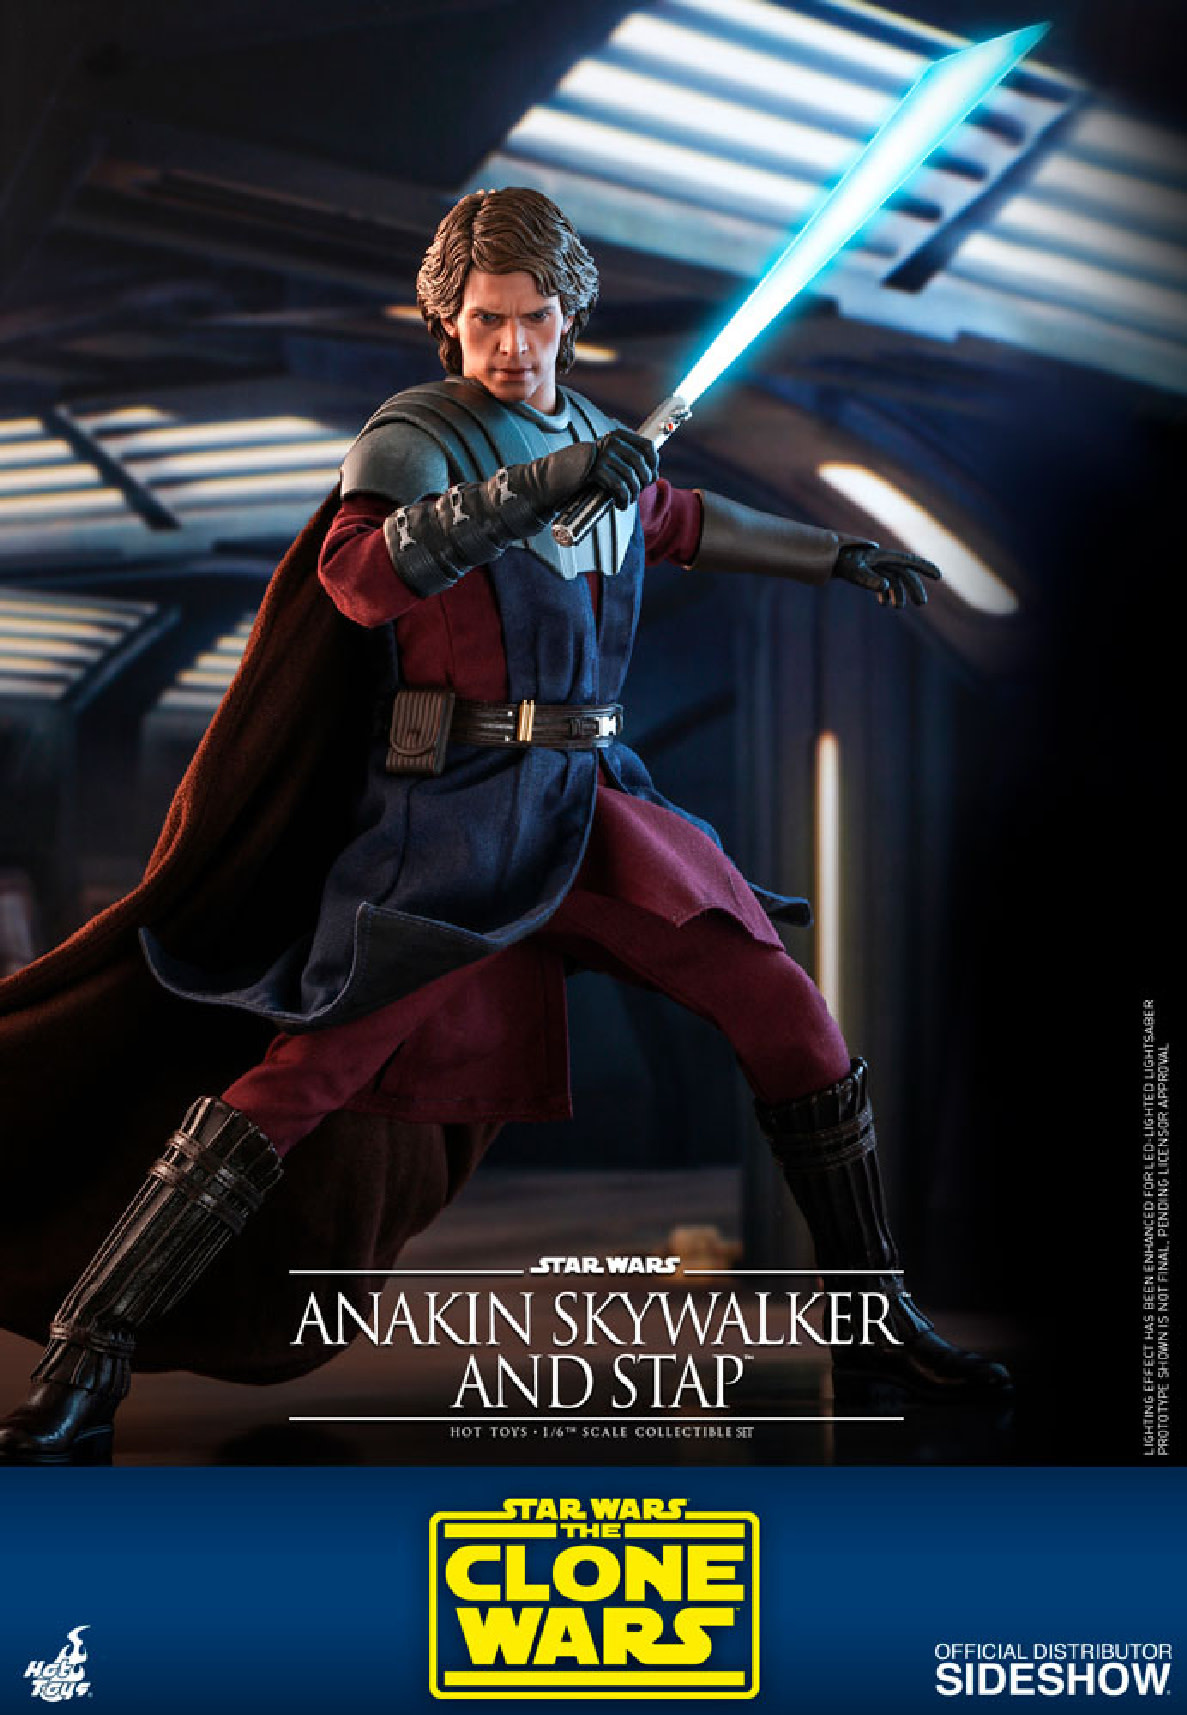 Hot toys Star Wars: The Clone Wars - Anakin Skywalker and STAP 1:6